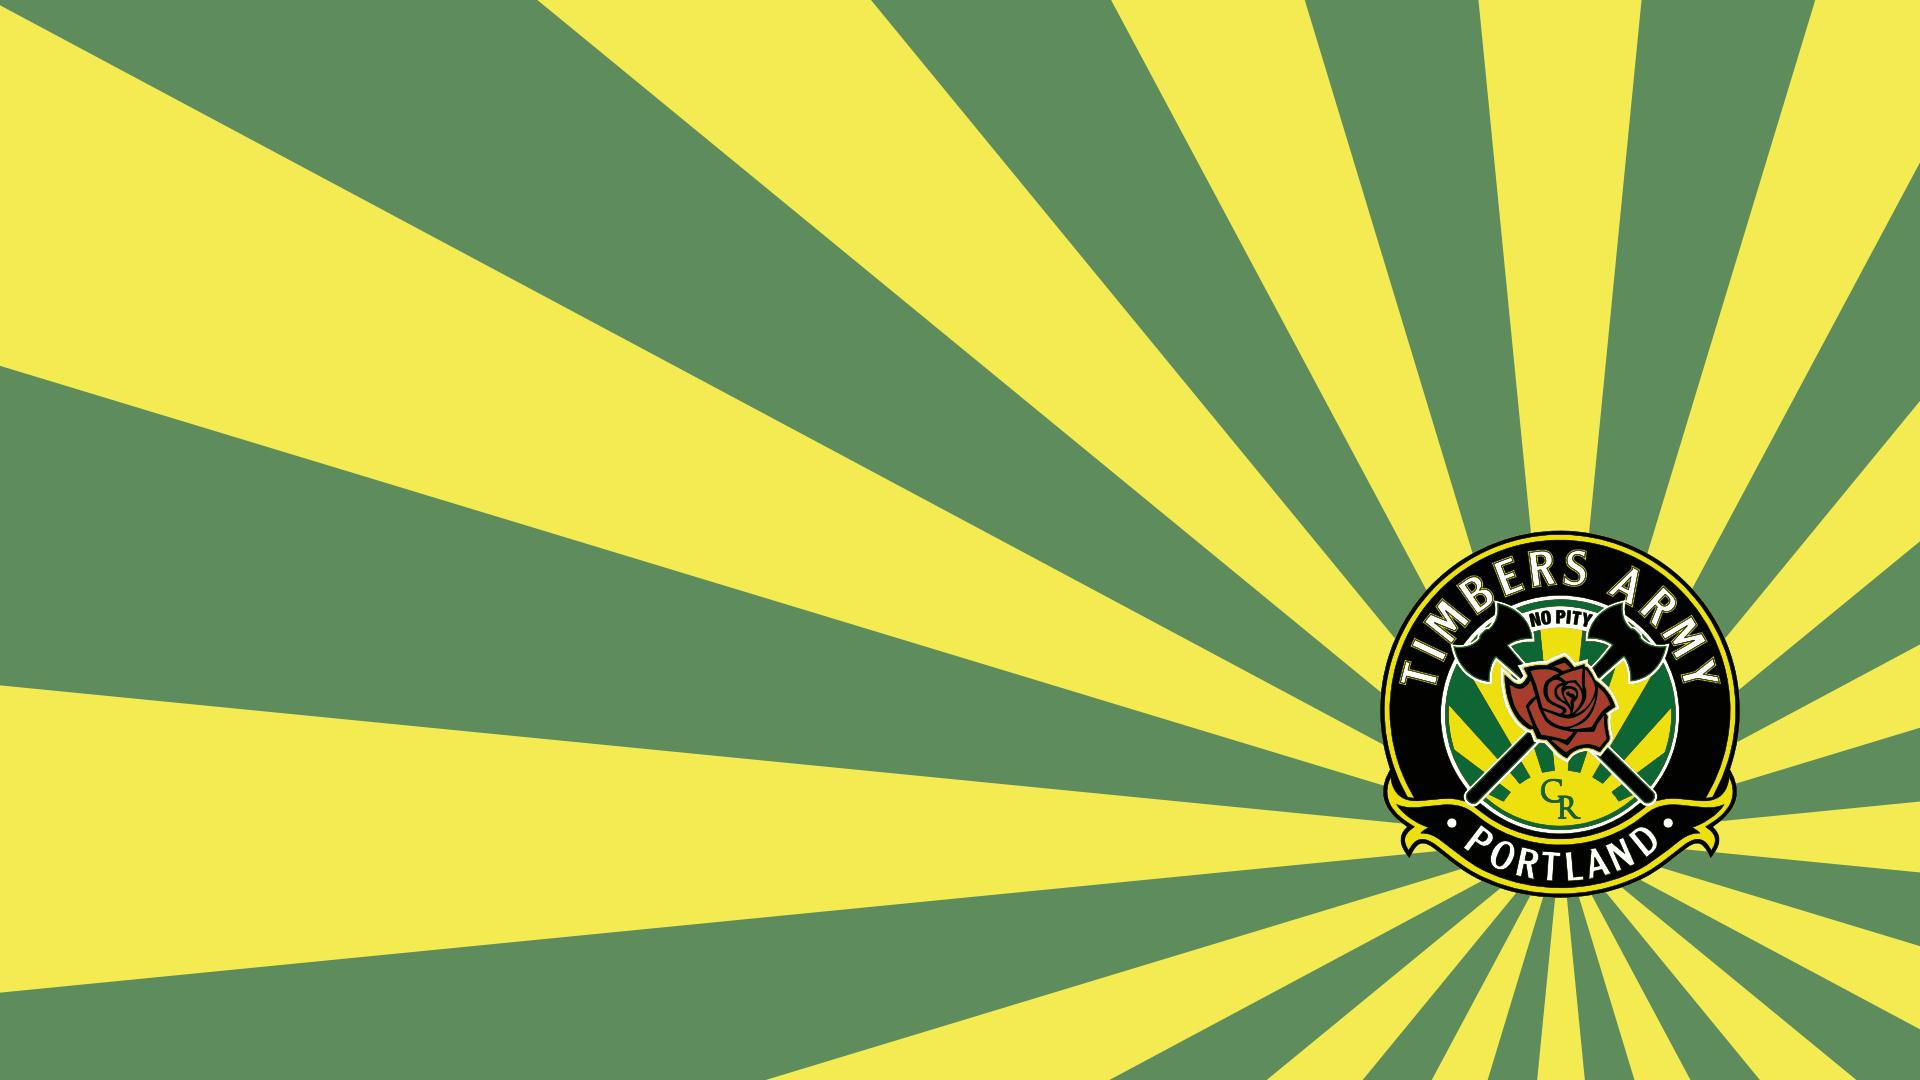 1920x1080 - Portland Timbers Wallpapers 14